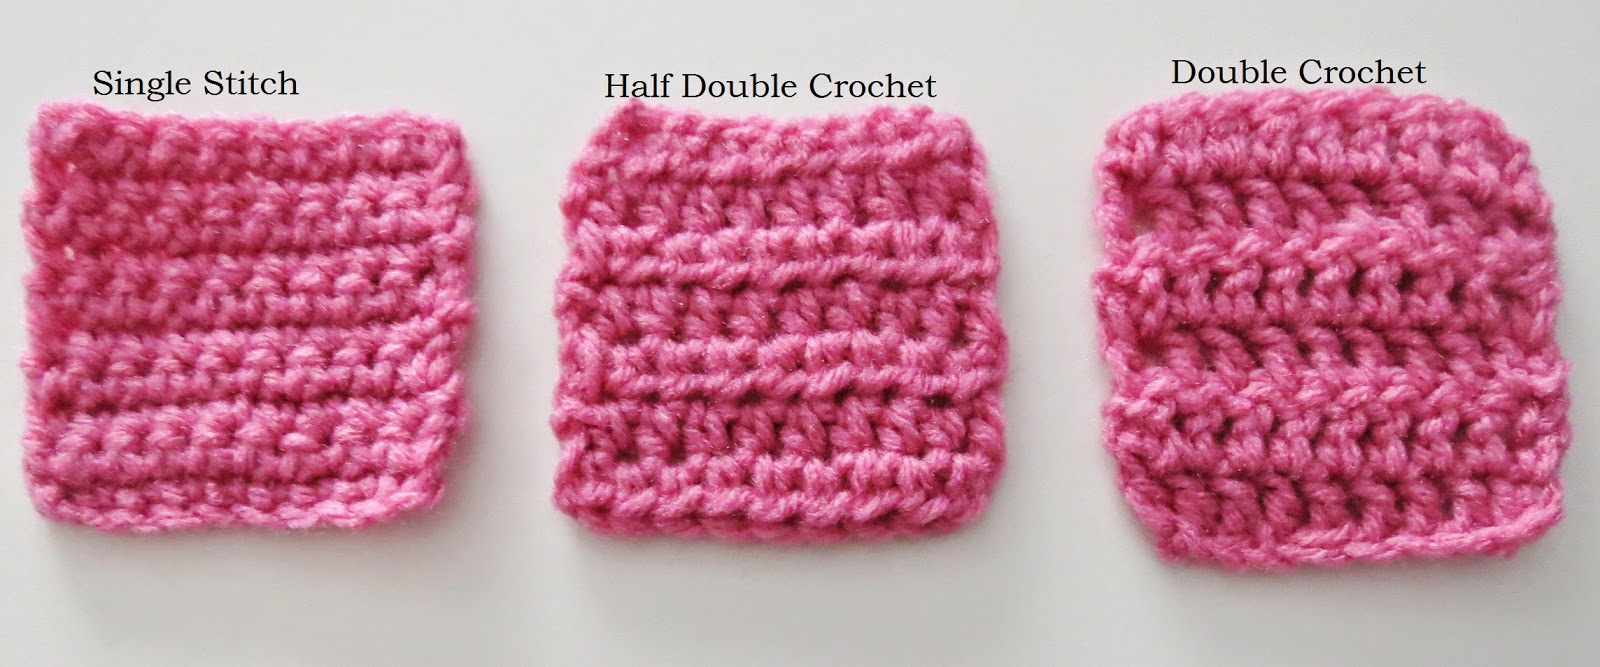 Crocheting Double Stitch : Crochet Stitches: Single stitch (SS), half-double (HDC), and double ...